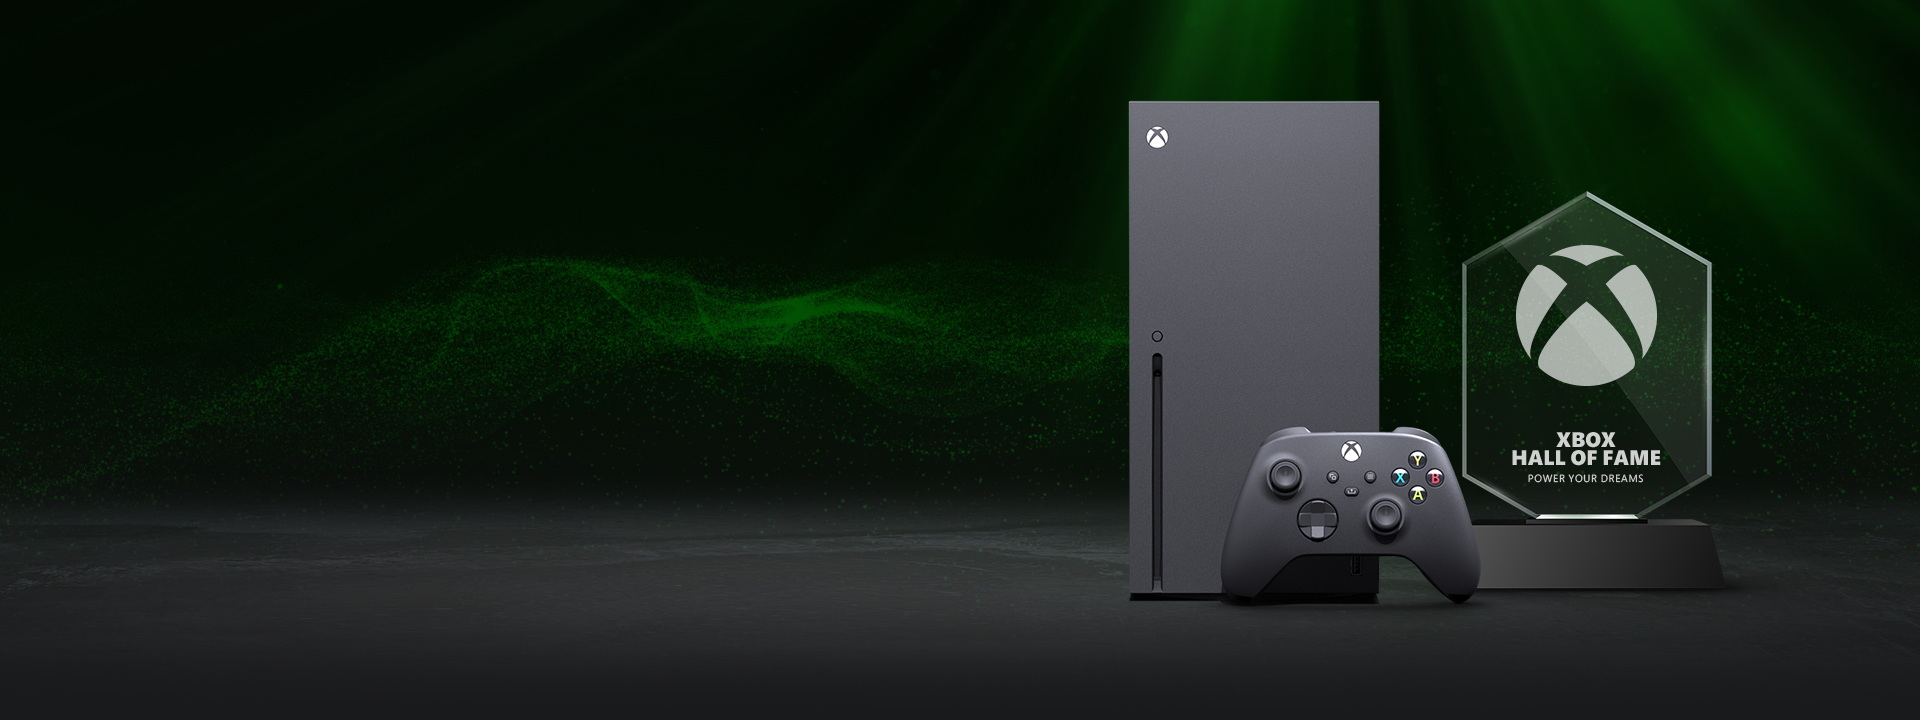 The Xbox Hall of Fame key visual, featuring the Xbox Series X and a custom trophy